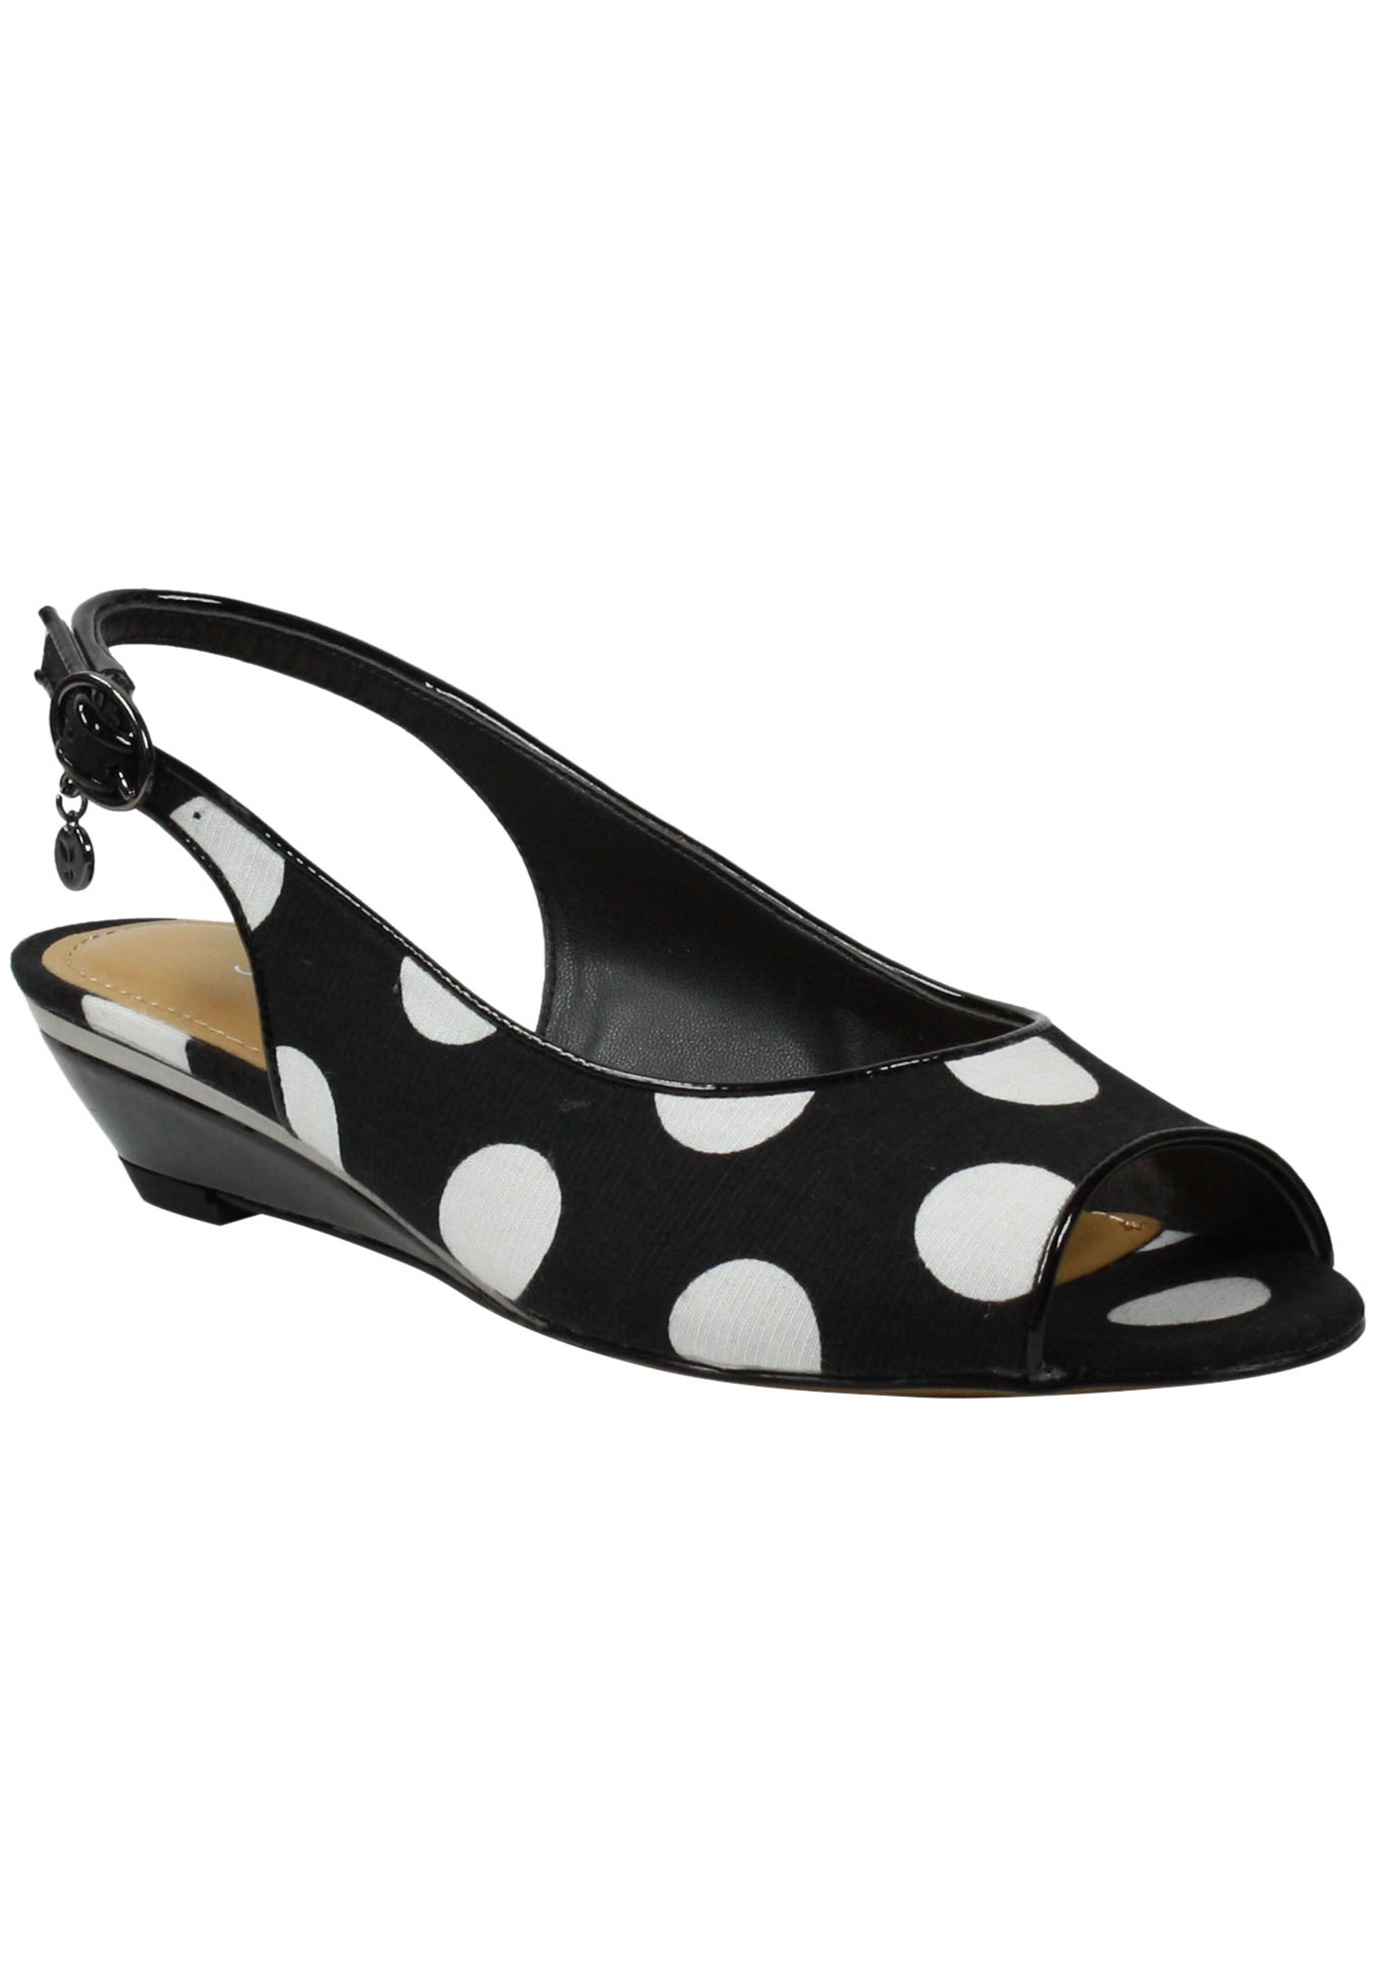 Elleyette Pumps by J. Renee',